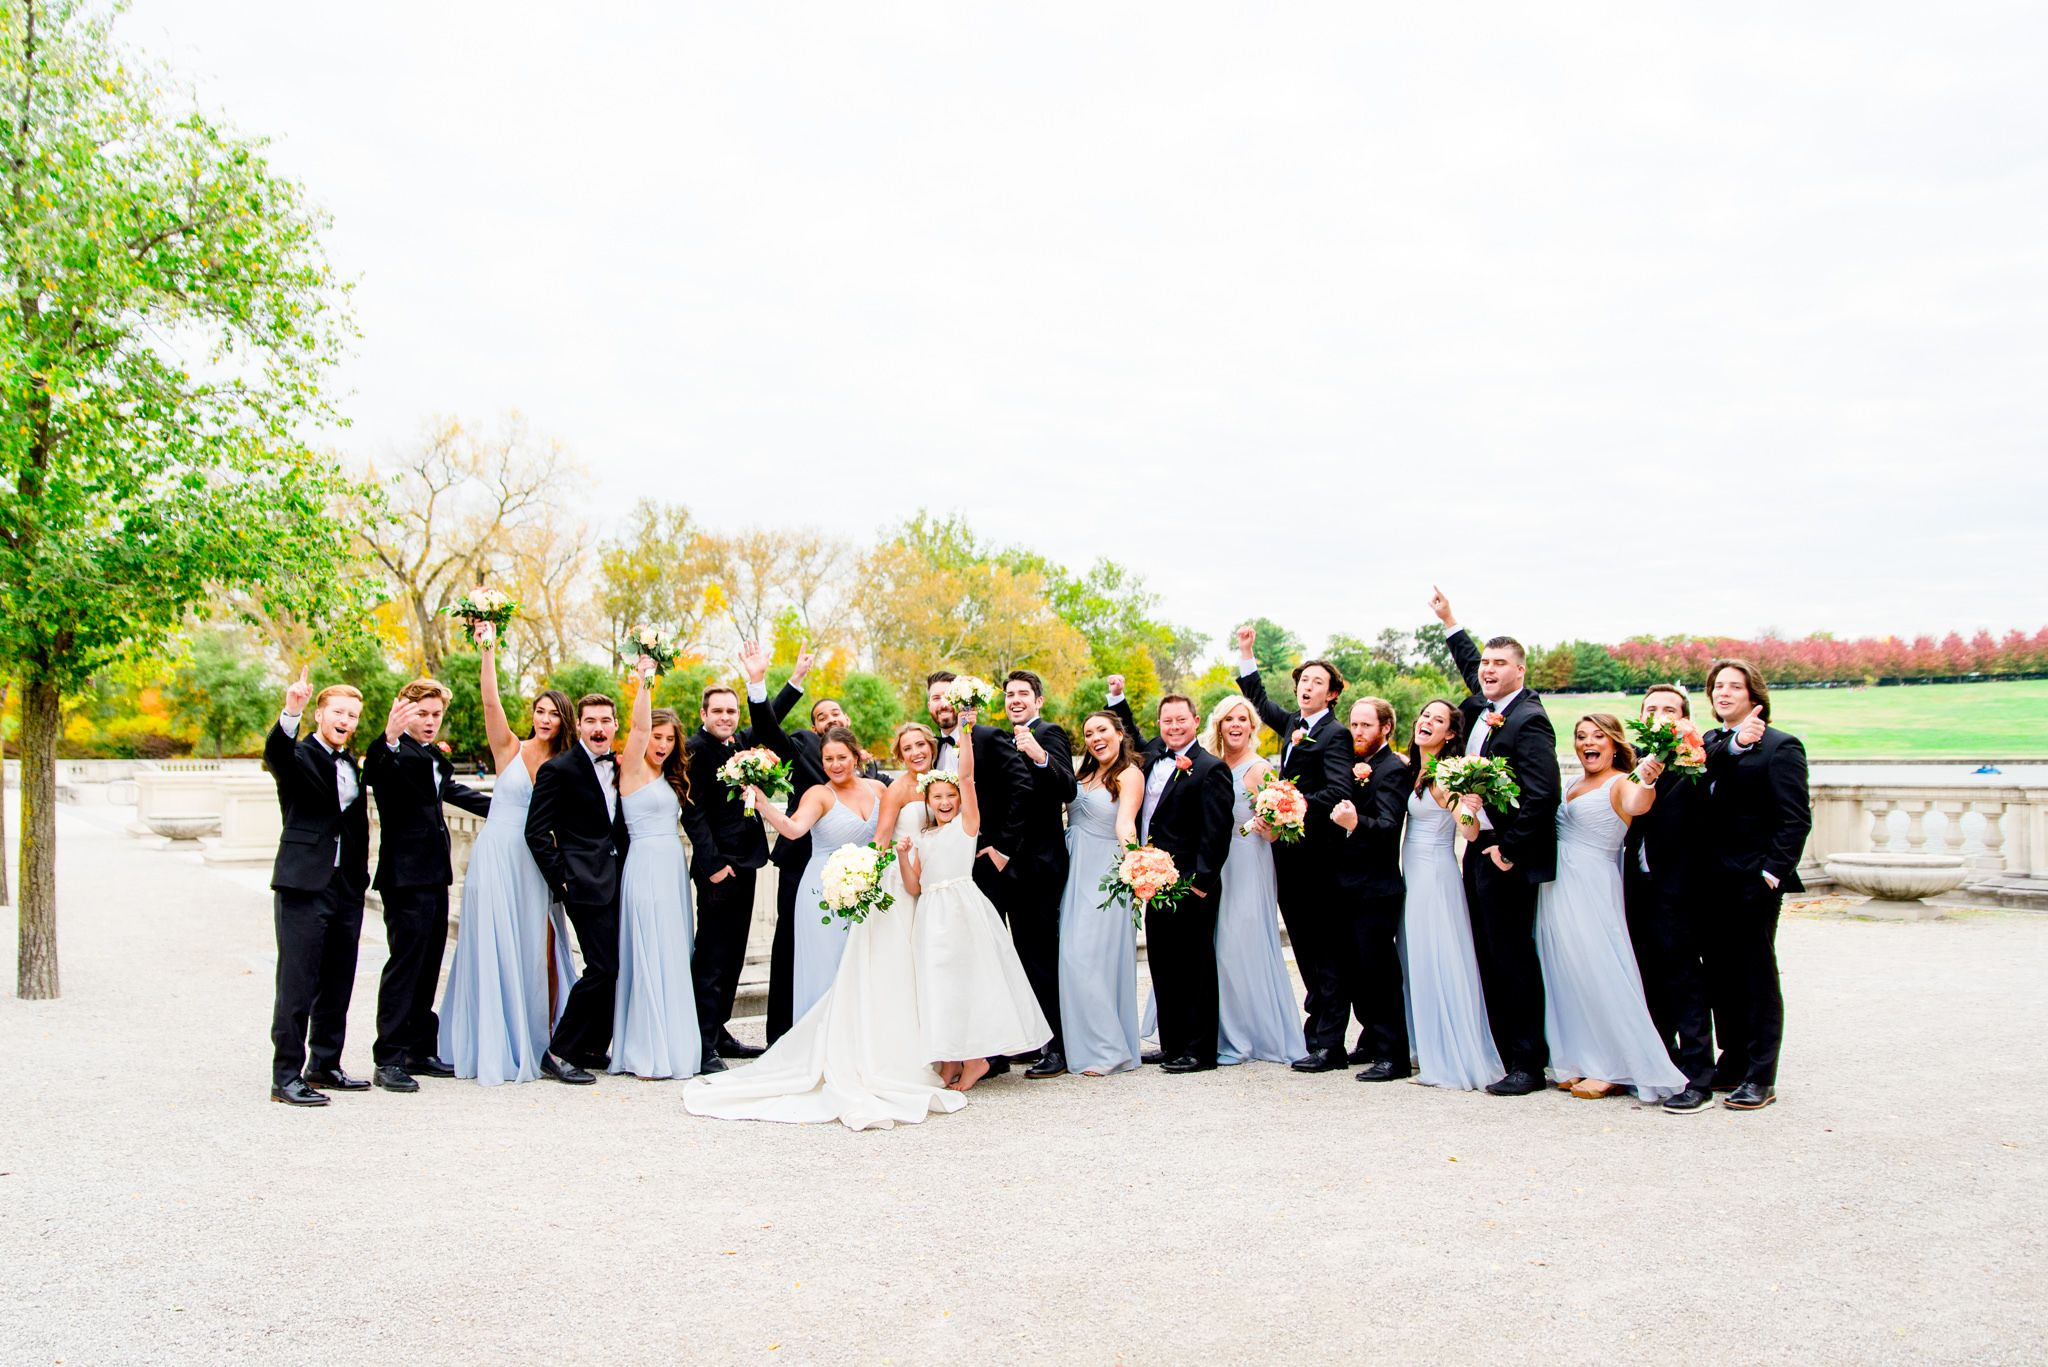 large wedding party in black suits and light blue dresses cheer on bride and groom at Forest Park in St. Louis